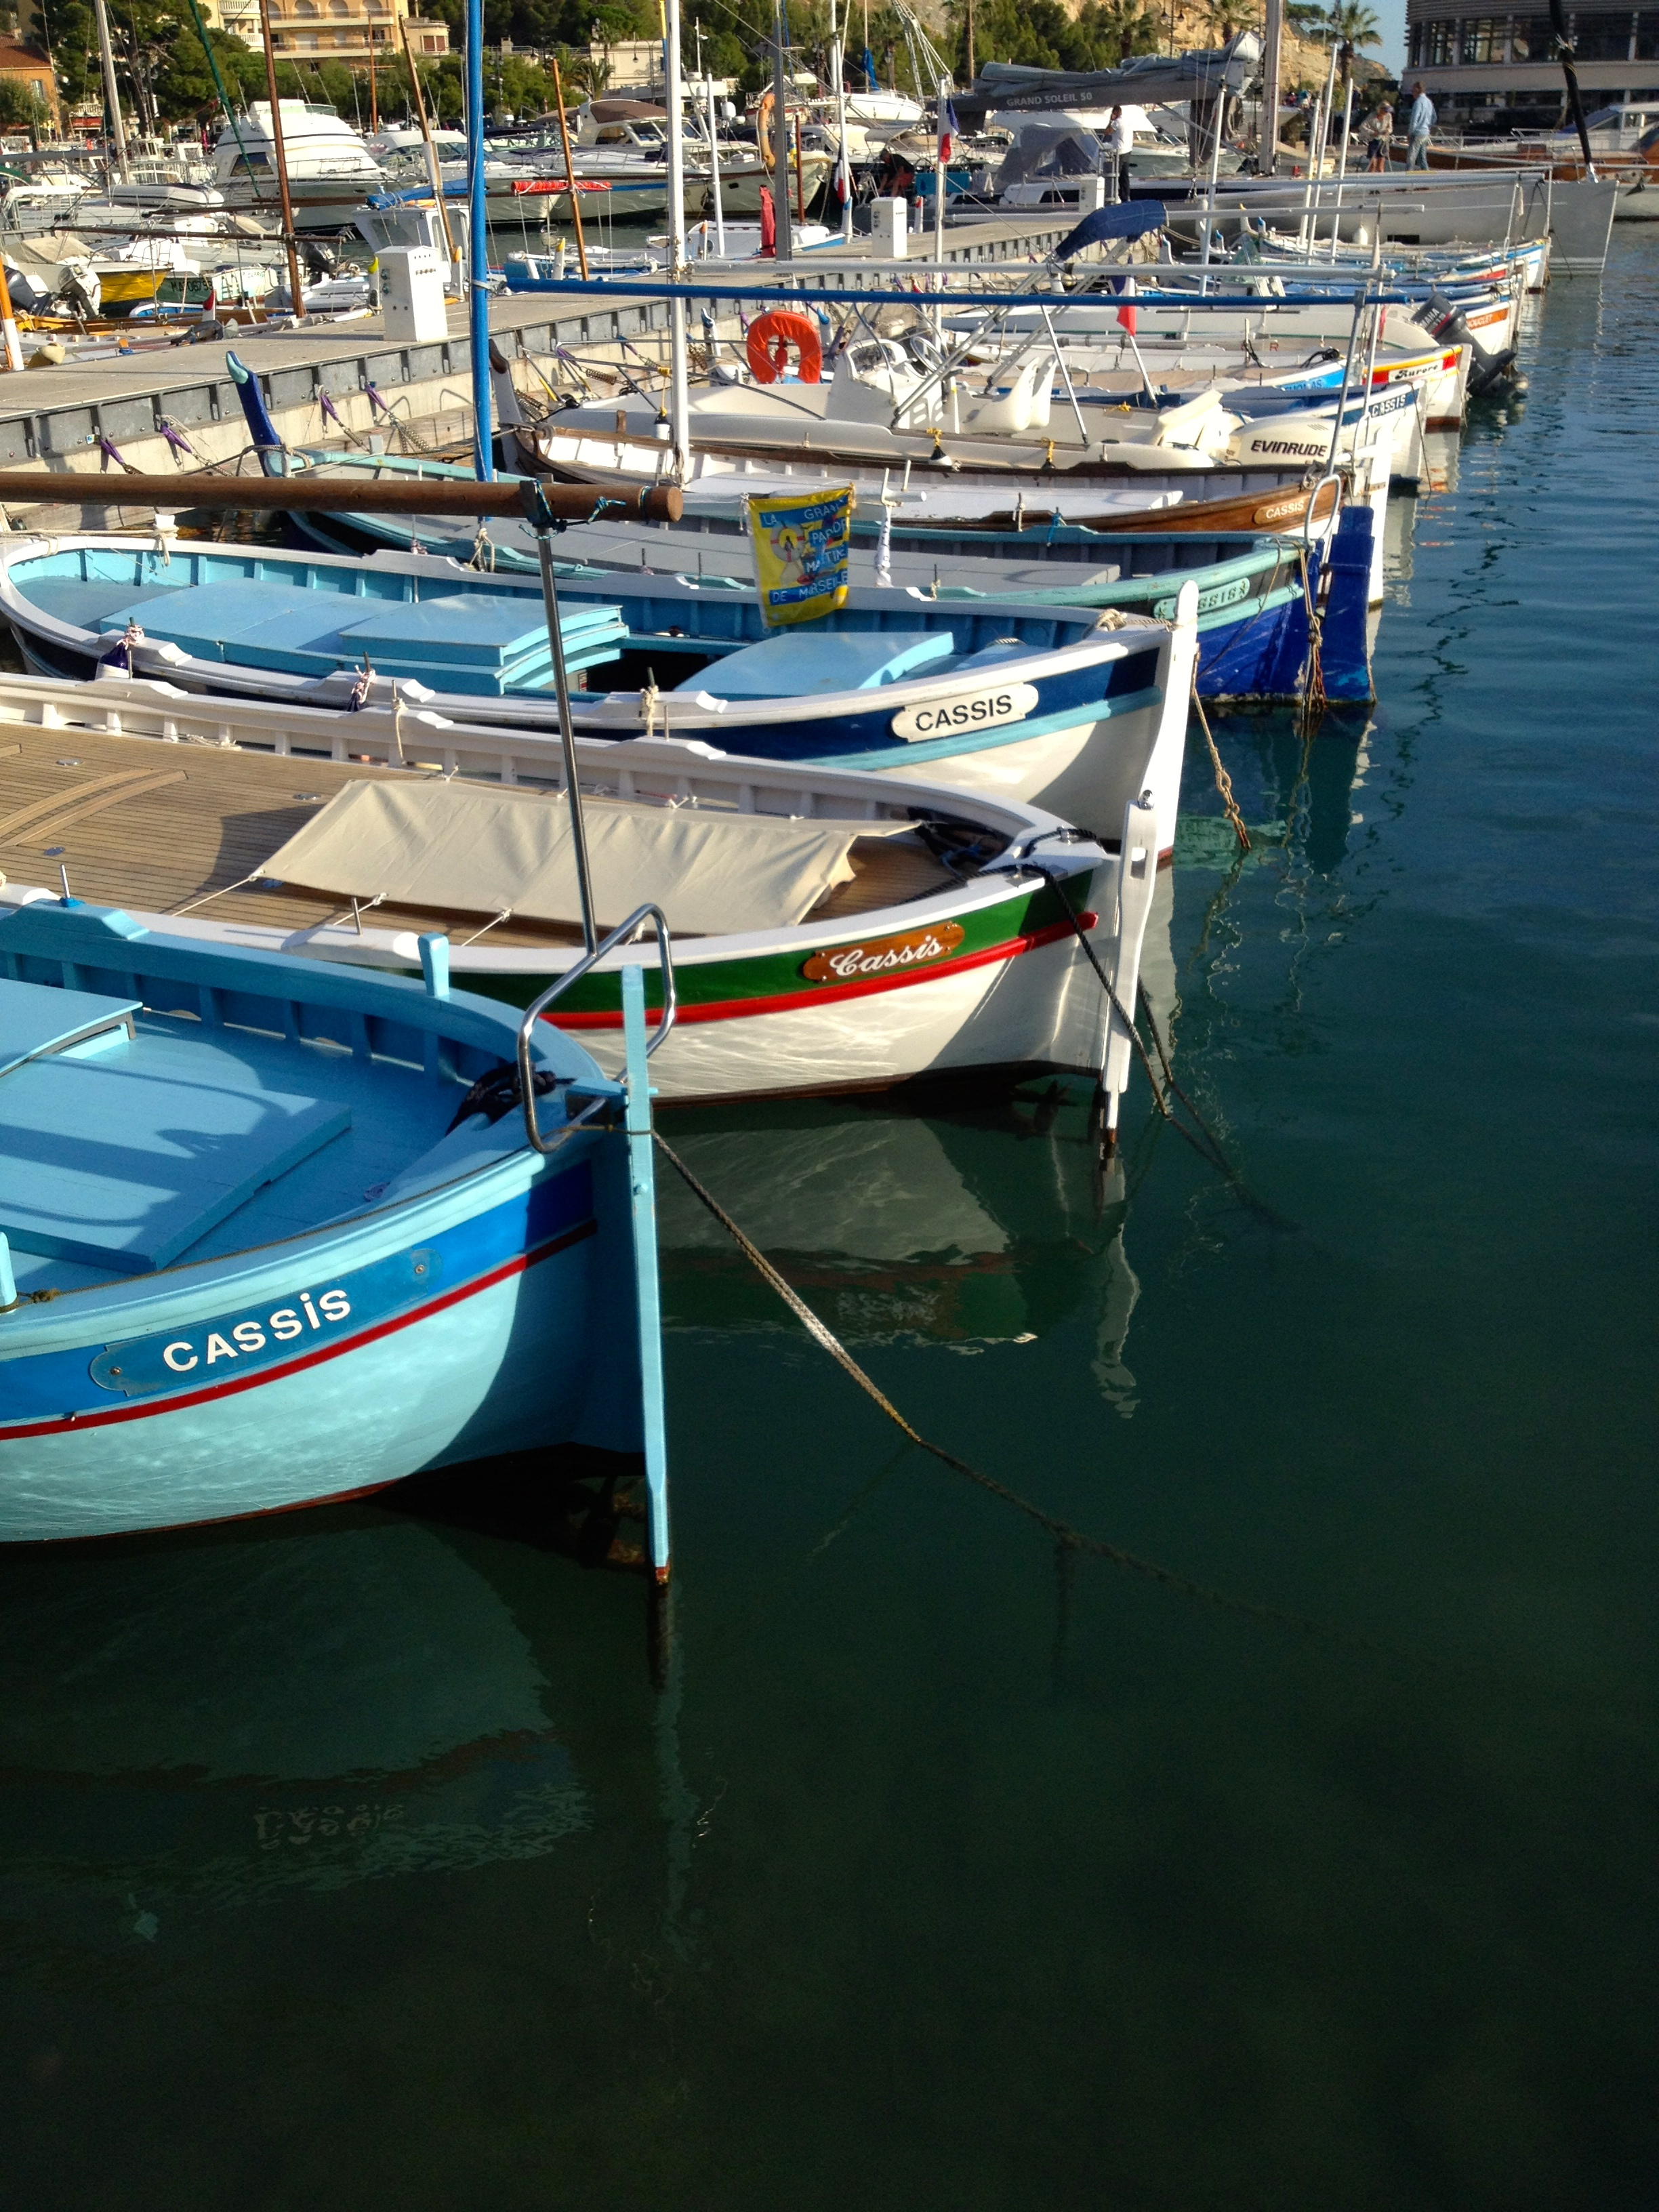 weekend-hippie-cassis-boats